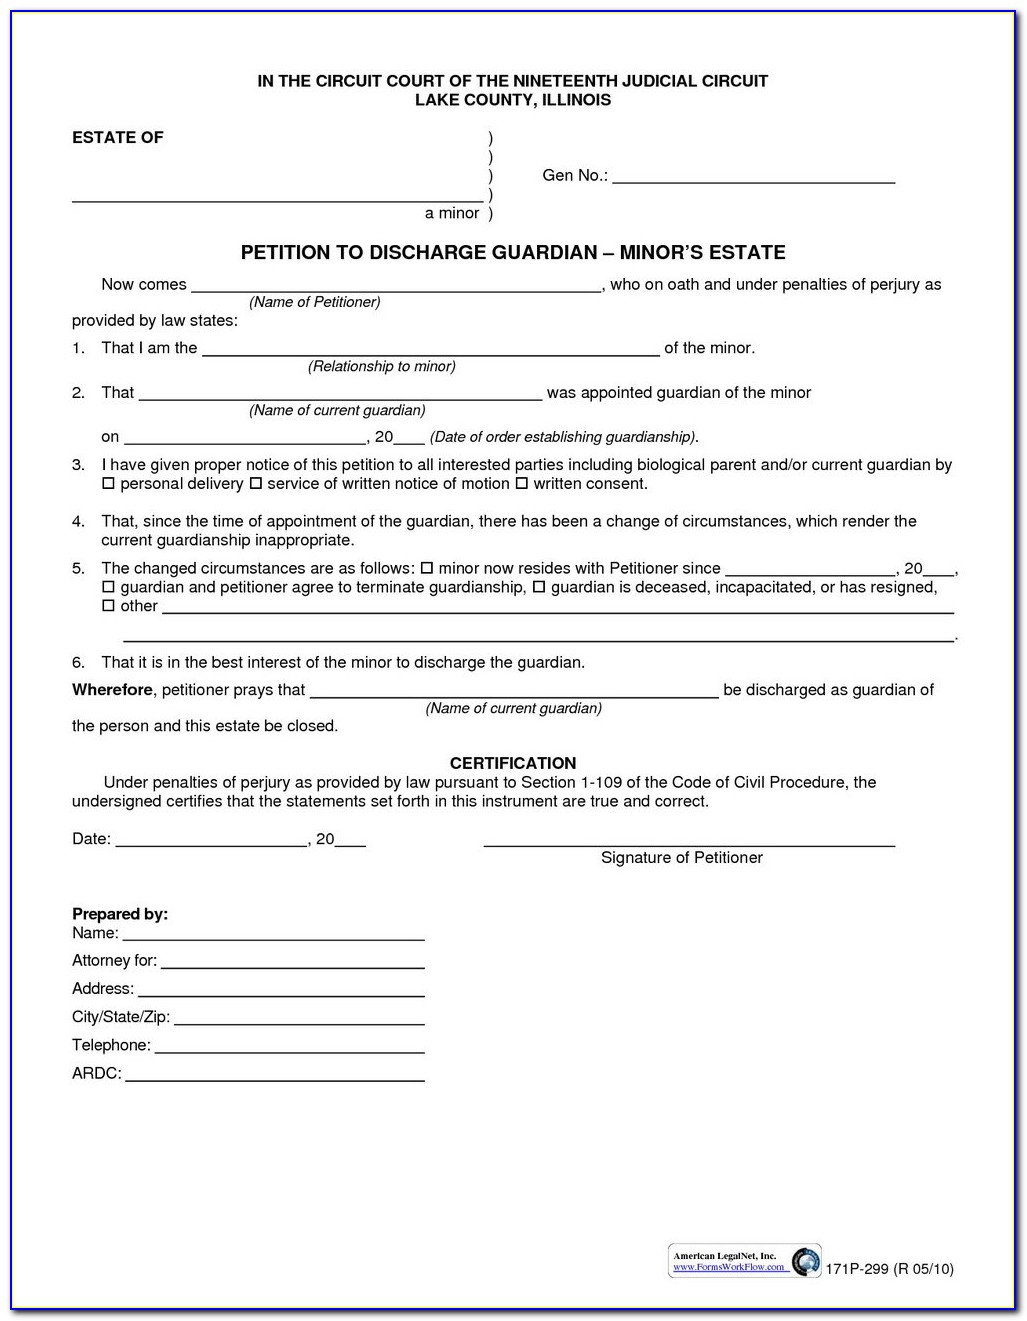 Joint Divorce Petition In Illinois